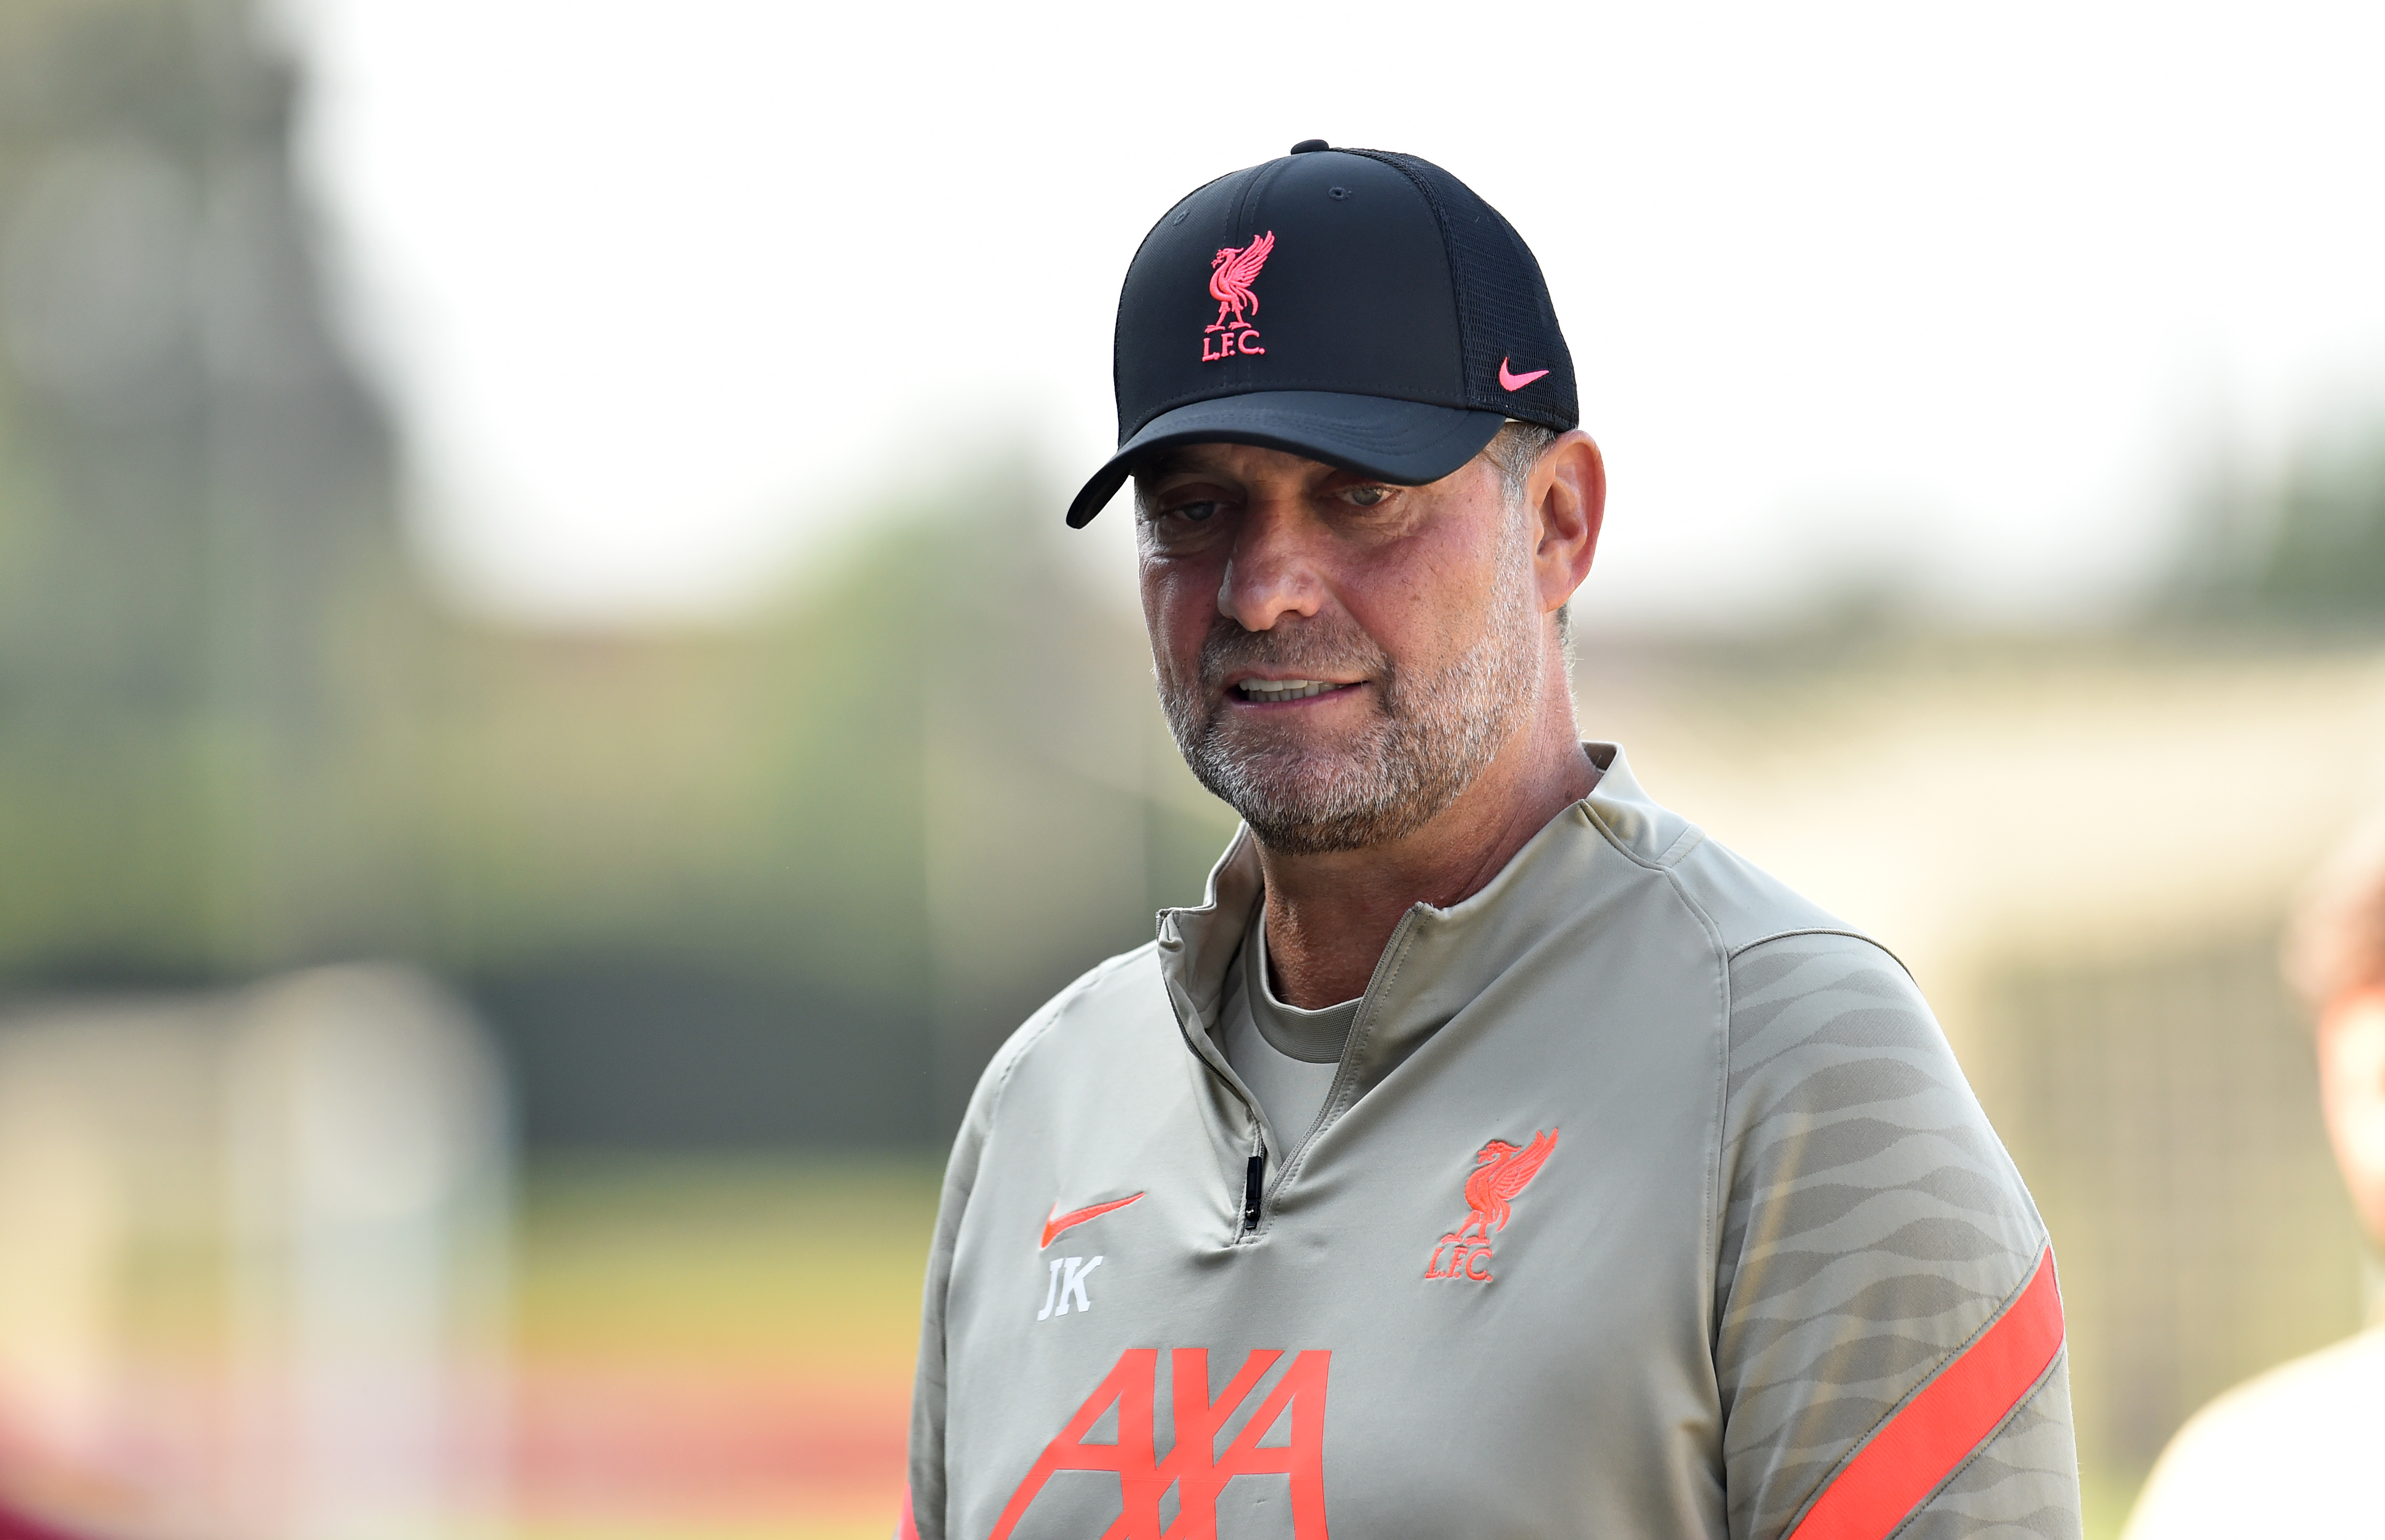 Jurgen Klopp manager of Liverpool during a training session at AXA Training Centre on August 26, 2021 in Kirkby, England.